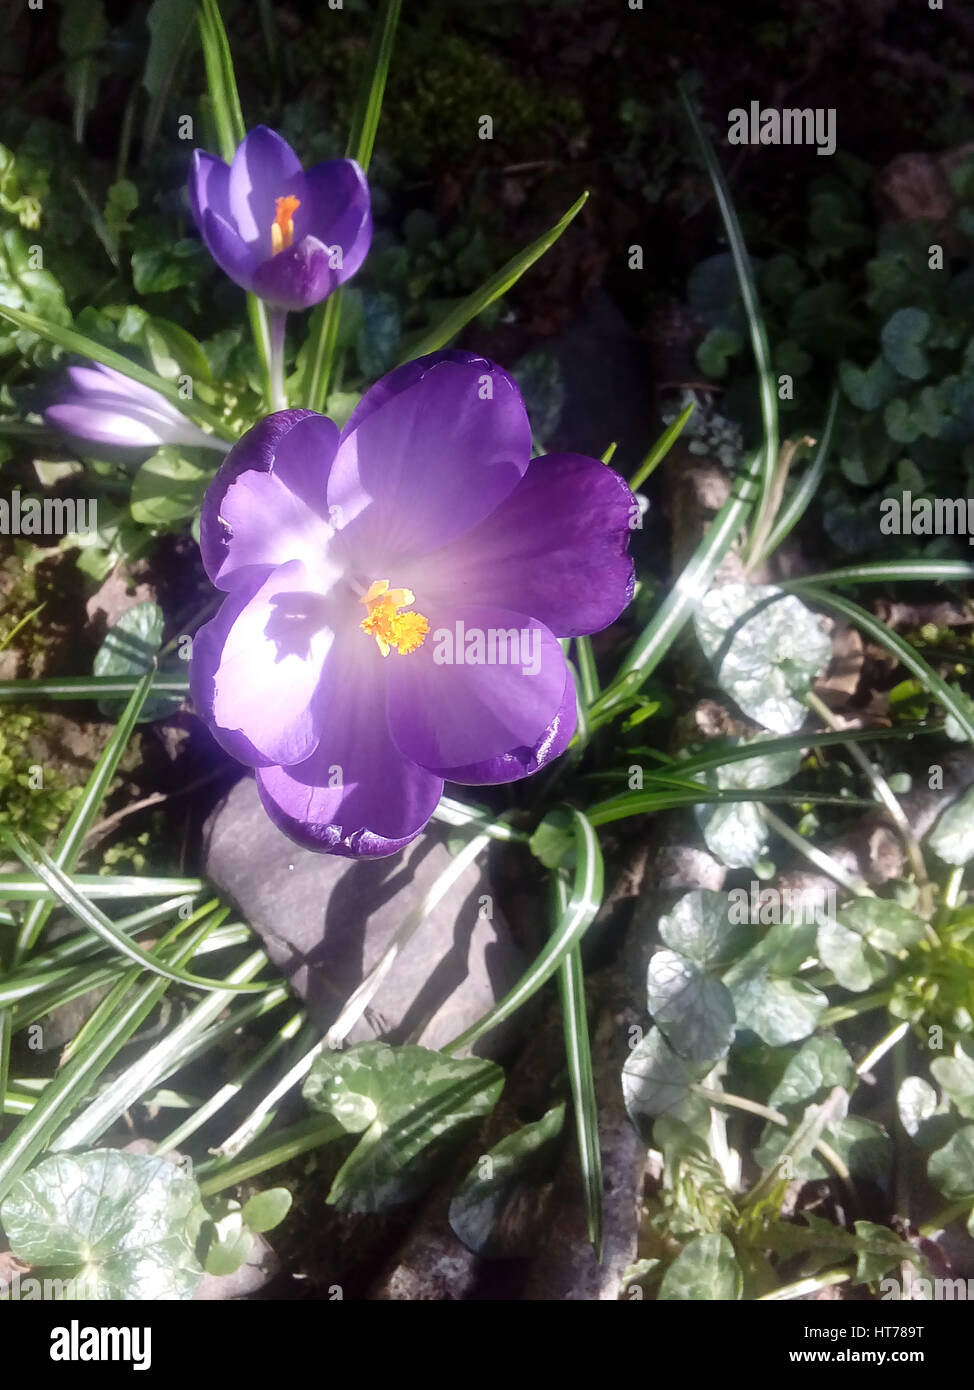 3906a76d06a33 Narcissus And Crocus Stock Photos   Narcissus And Crocus Stock ...